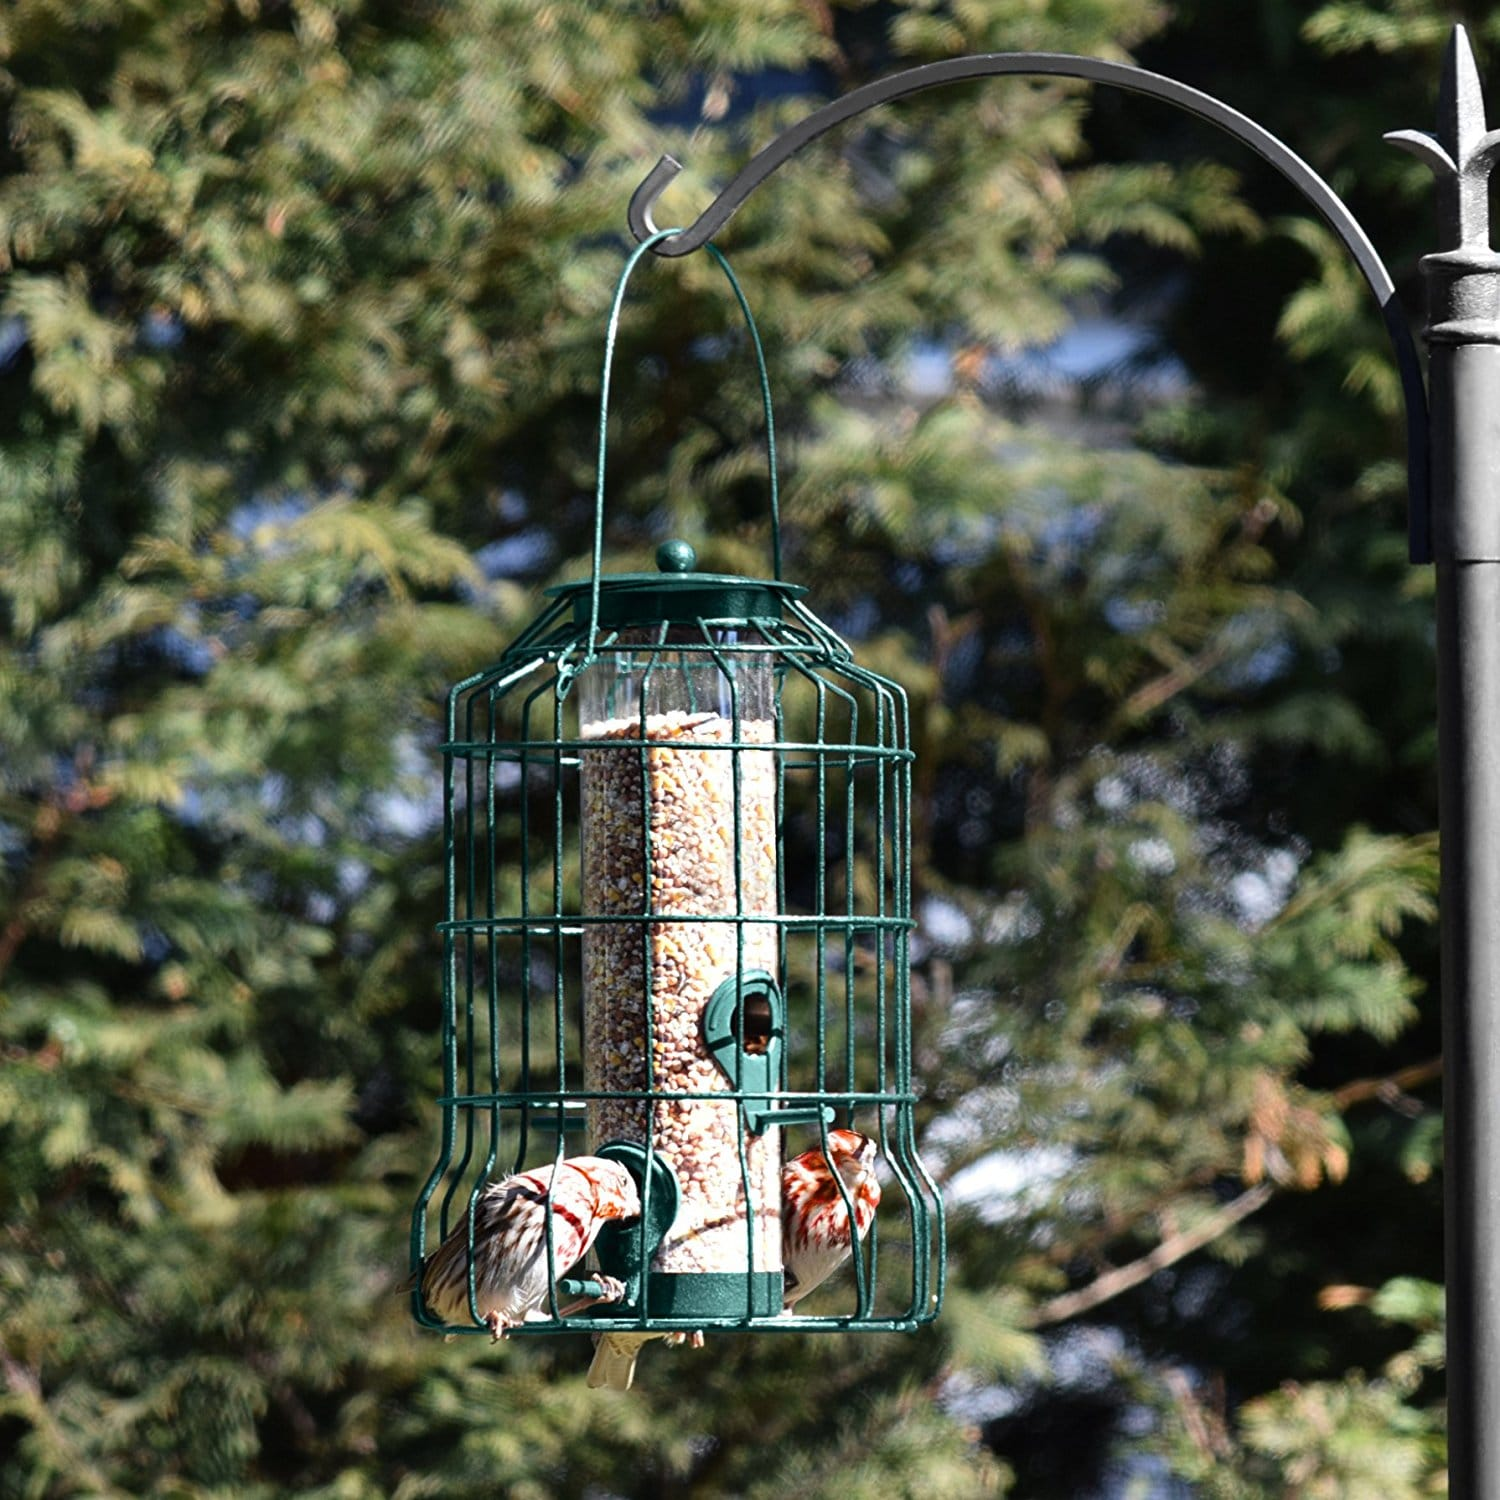 Diy Bird Feeder Cage Graybunny Caged Tube Bird Feeder Review